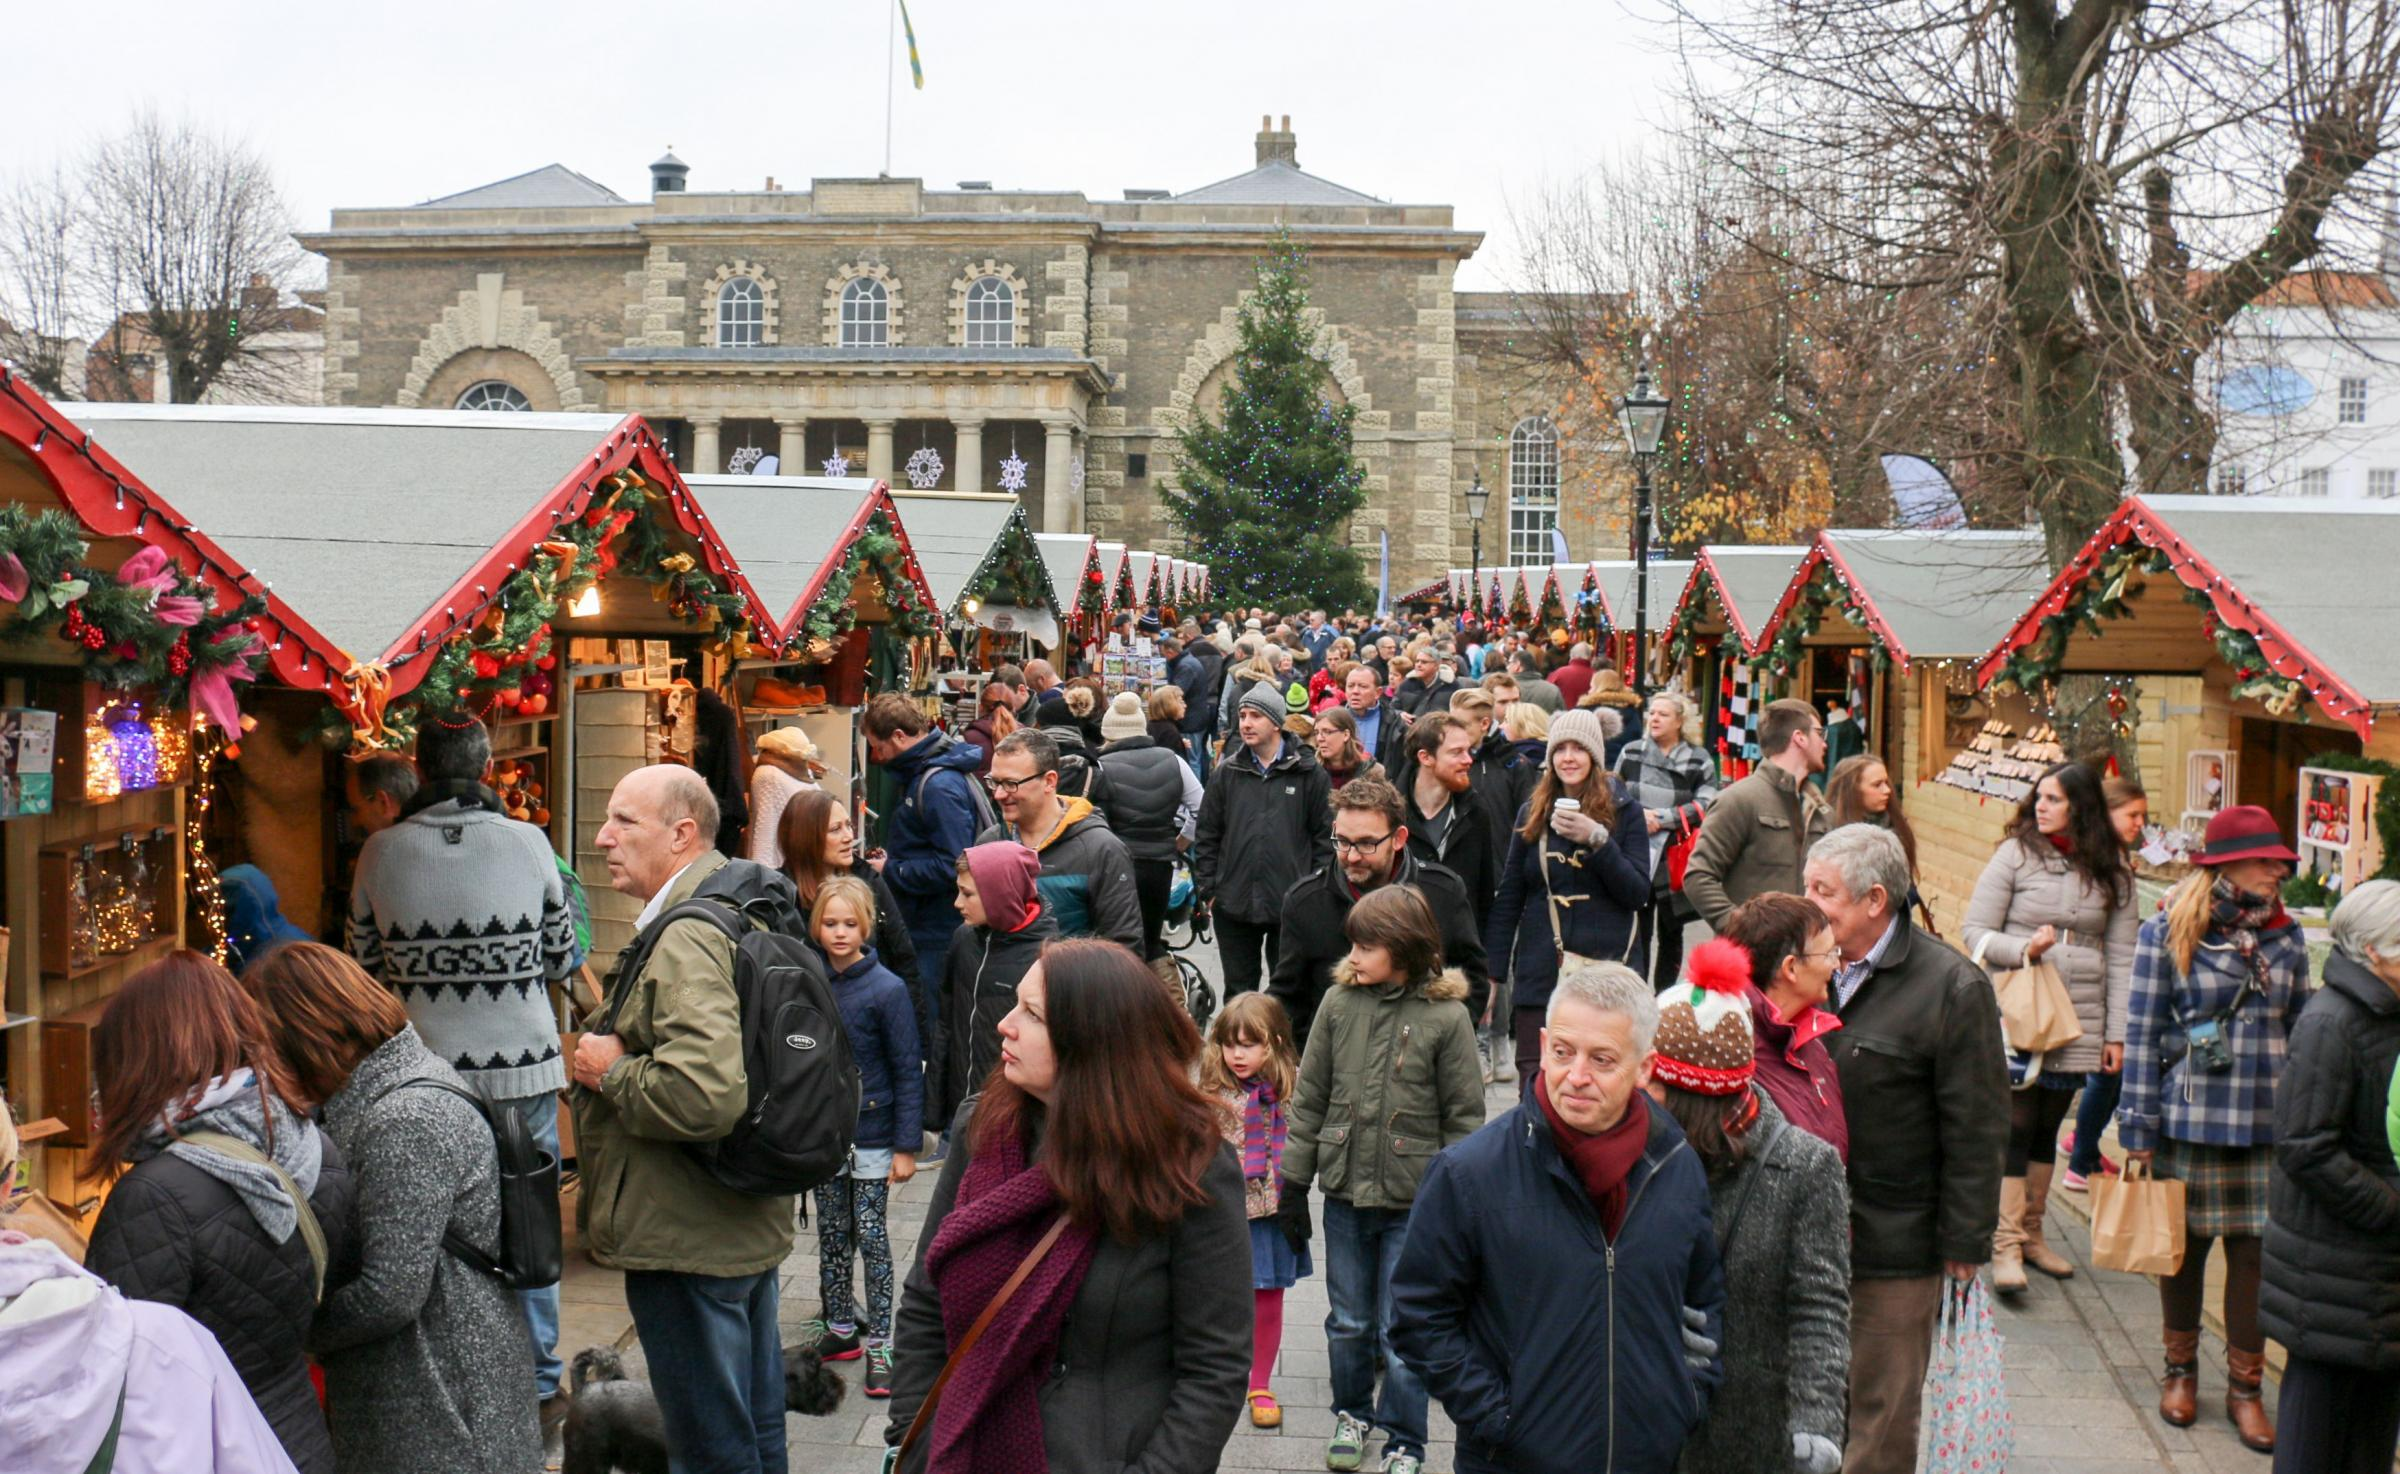 A busy day at the 2016 Christmas Market. Picture by Spencer Mulholland